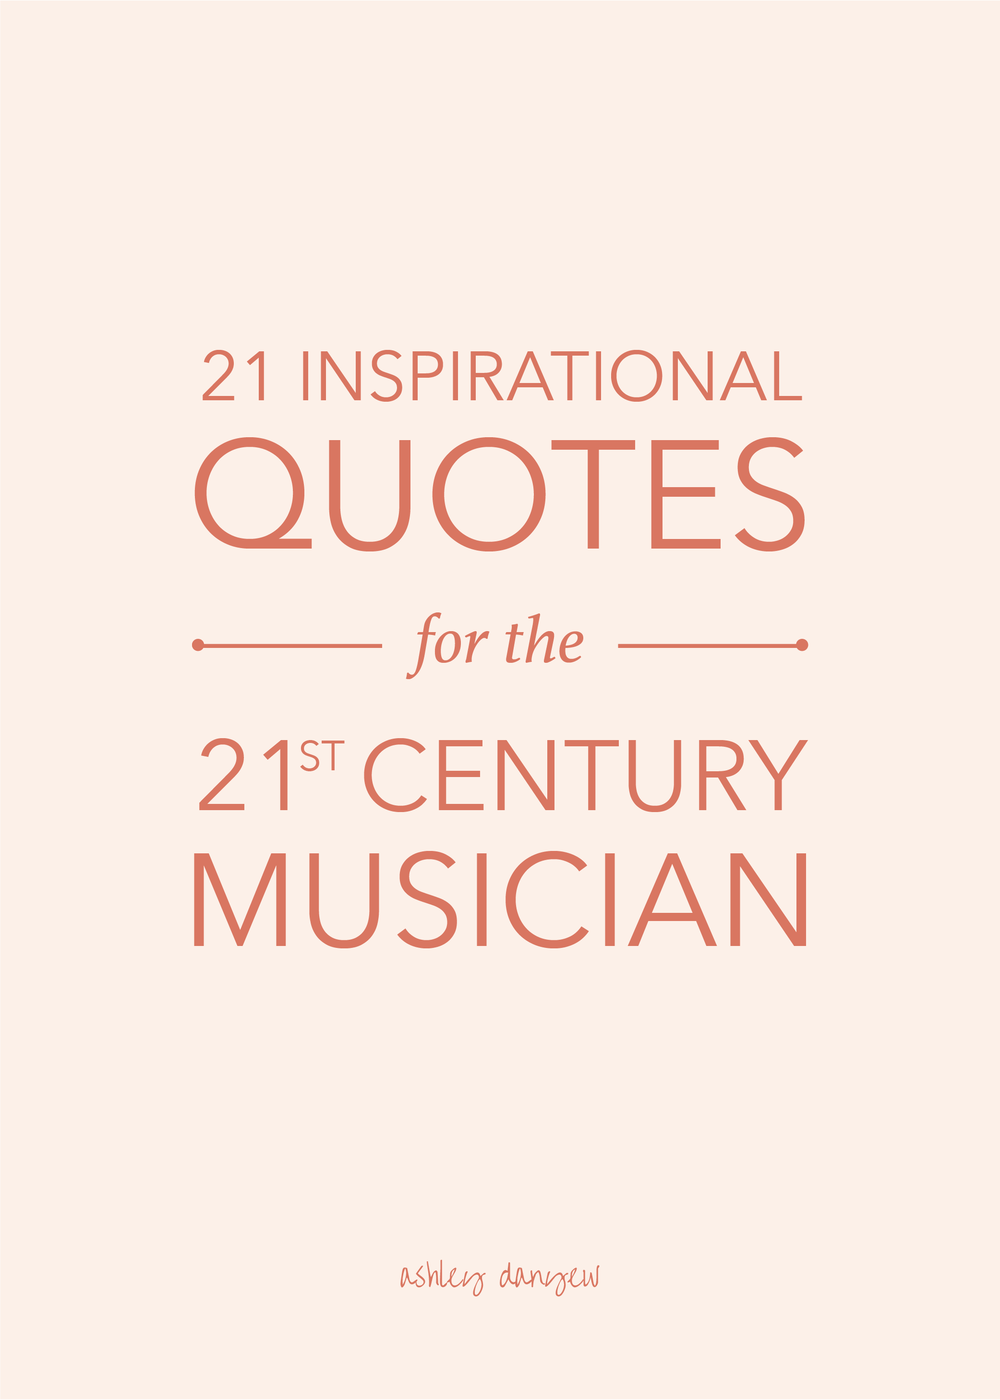 21-Inspirational-Quotes-for-the-21st-Century-Musician-01.png